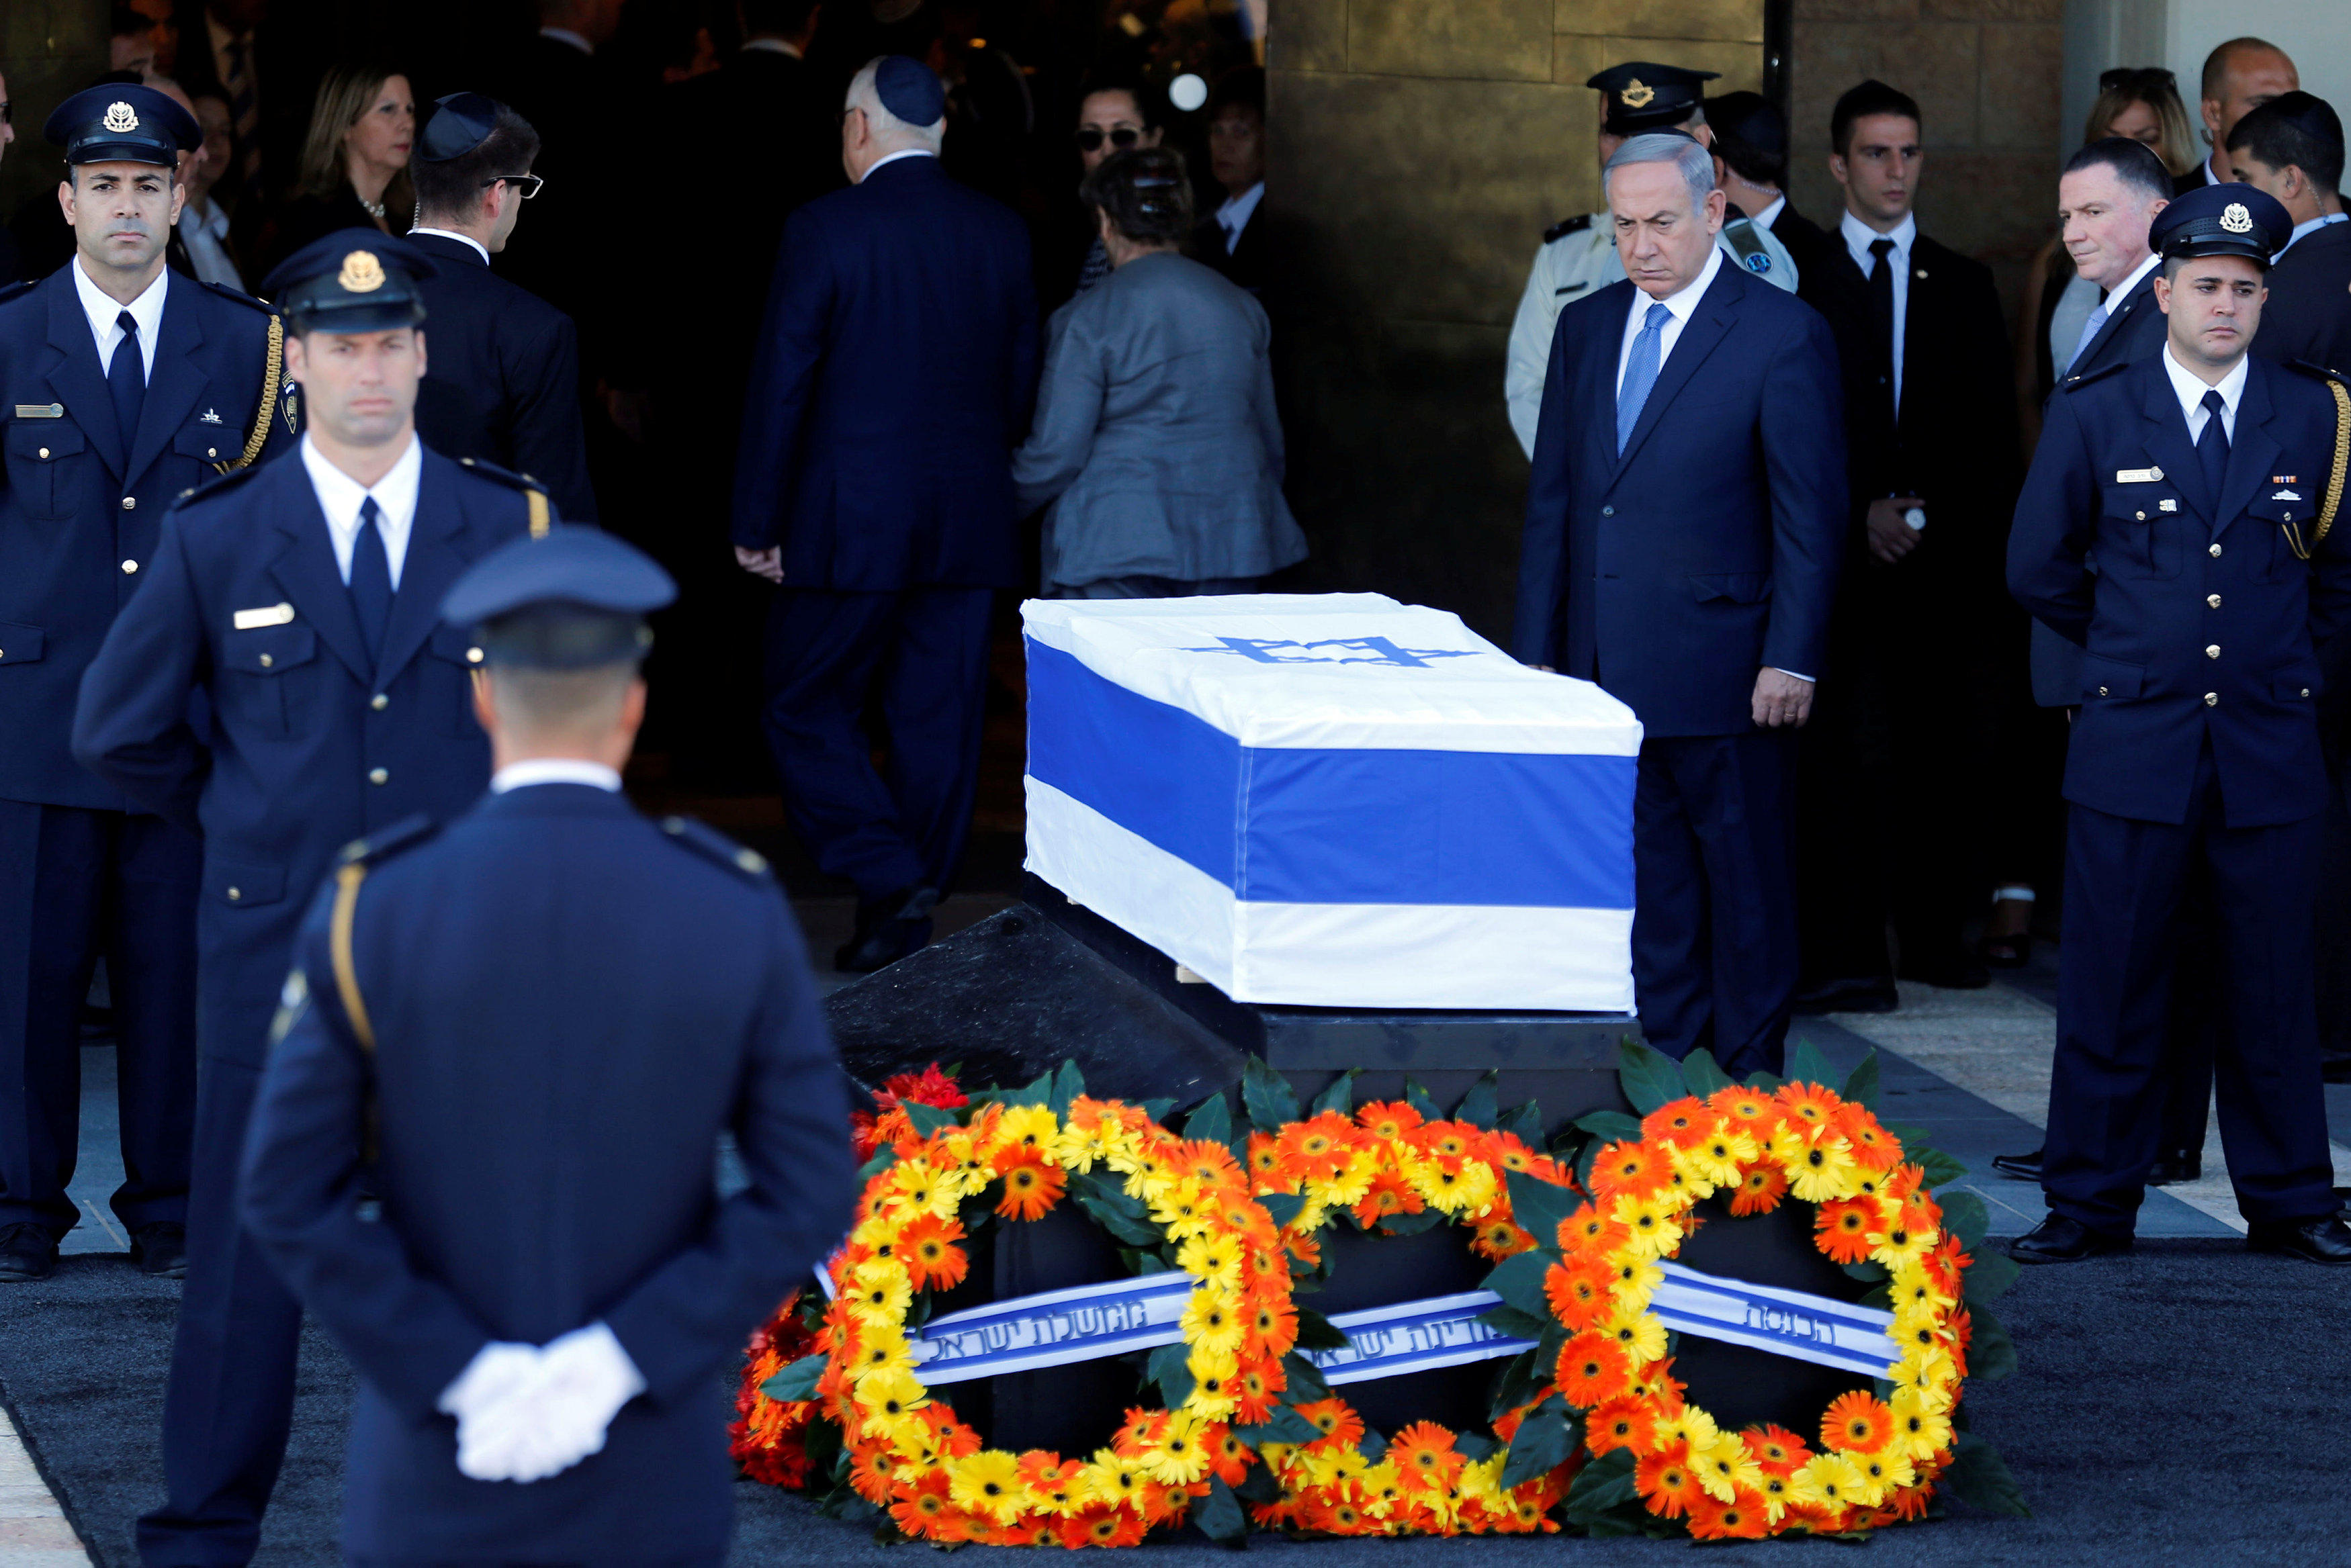 Israeli Prime Minister Benjamin Netanyahu stands next to the flag-draped coffin of former Israeli President Shimon Peres, as he lies in state at the Knesset plaza, the Israeli parliament, in Jerusalem